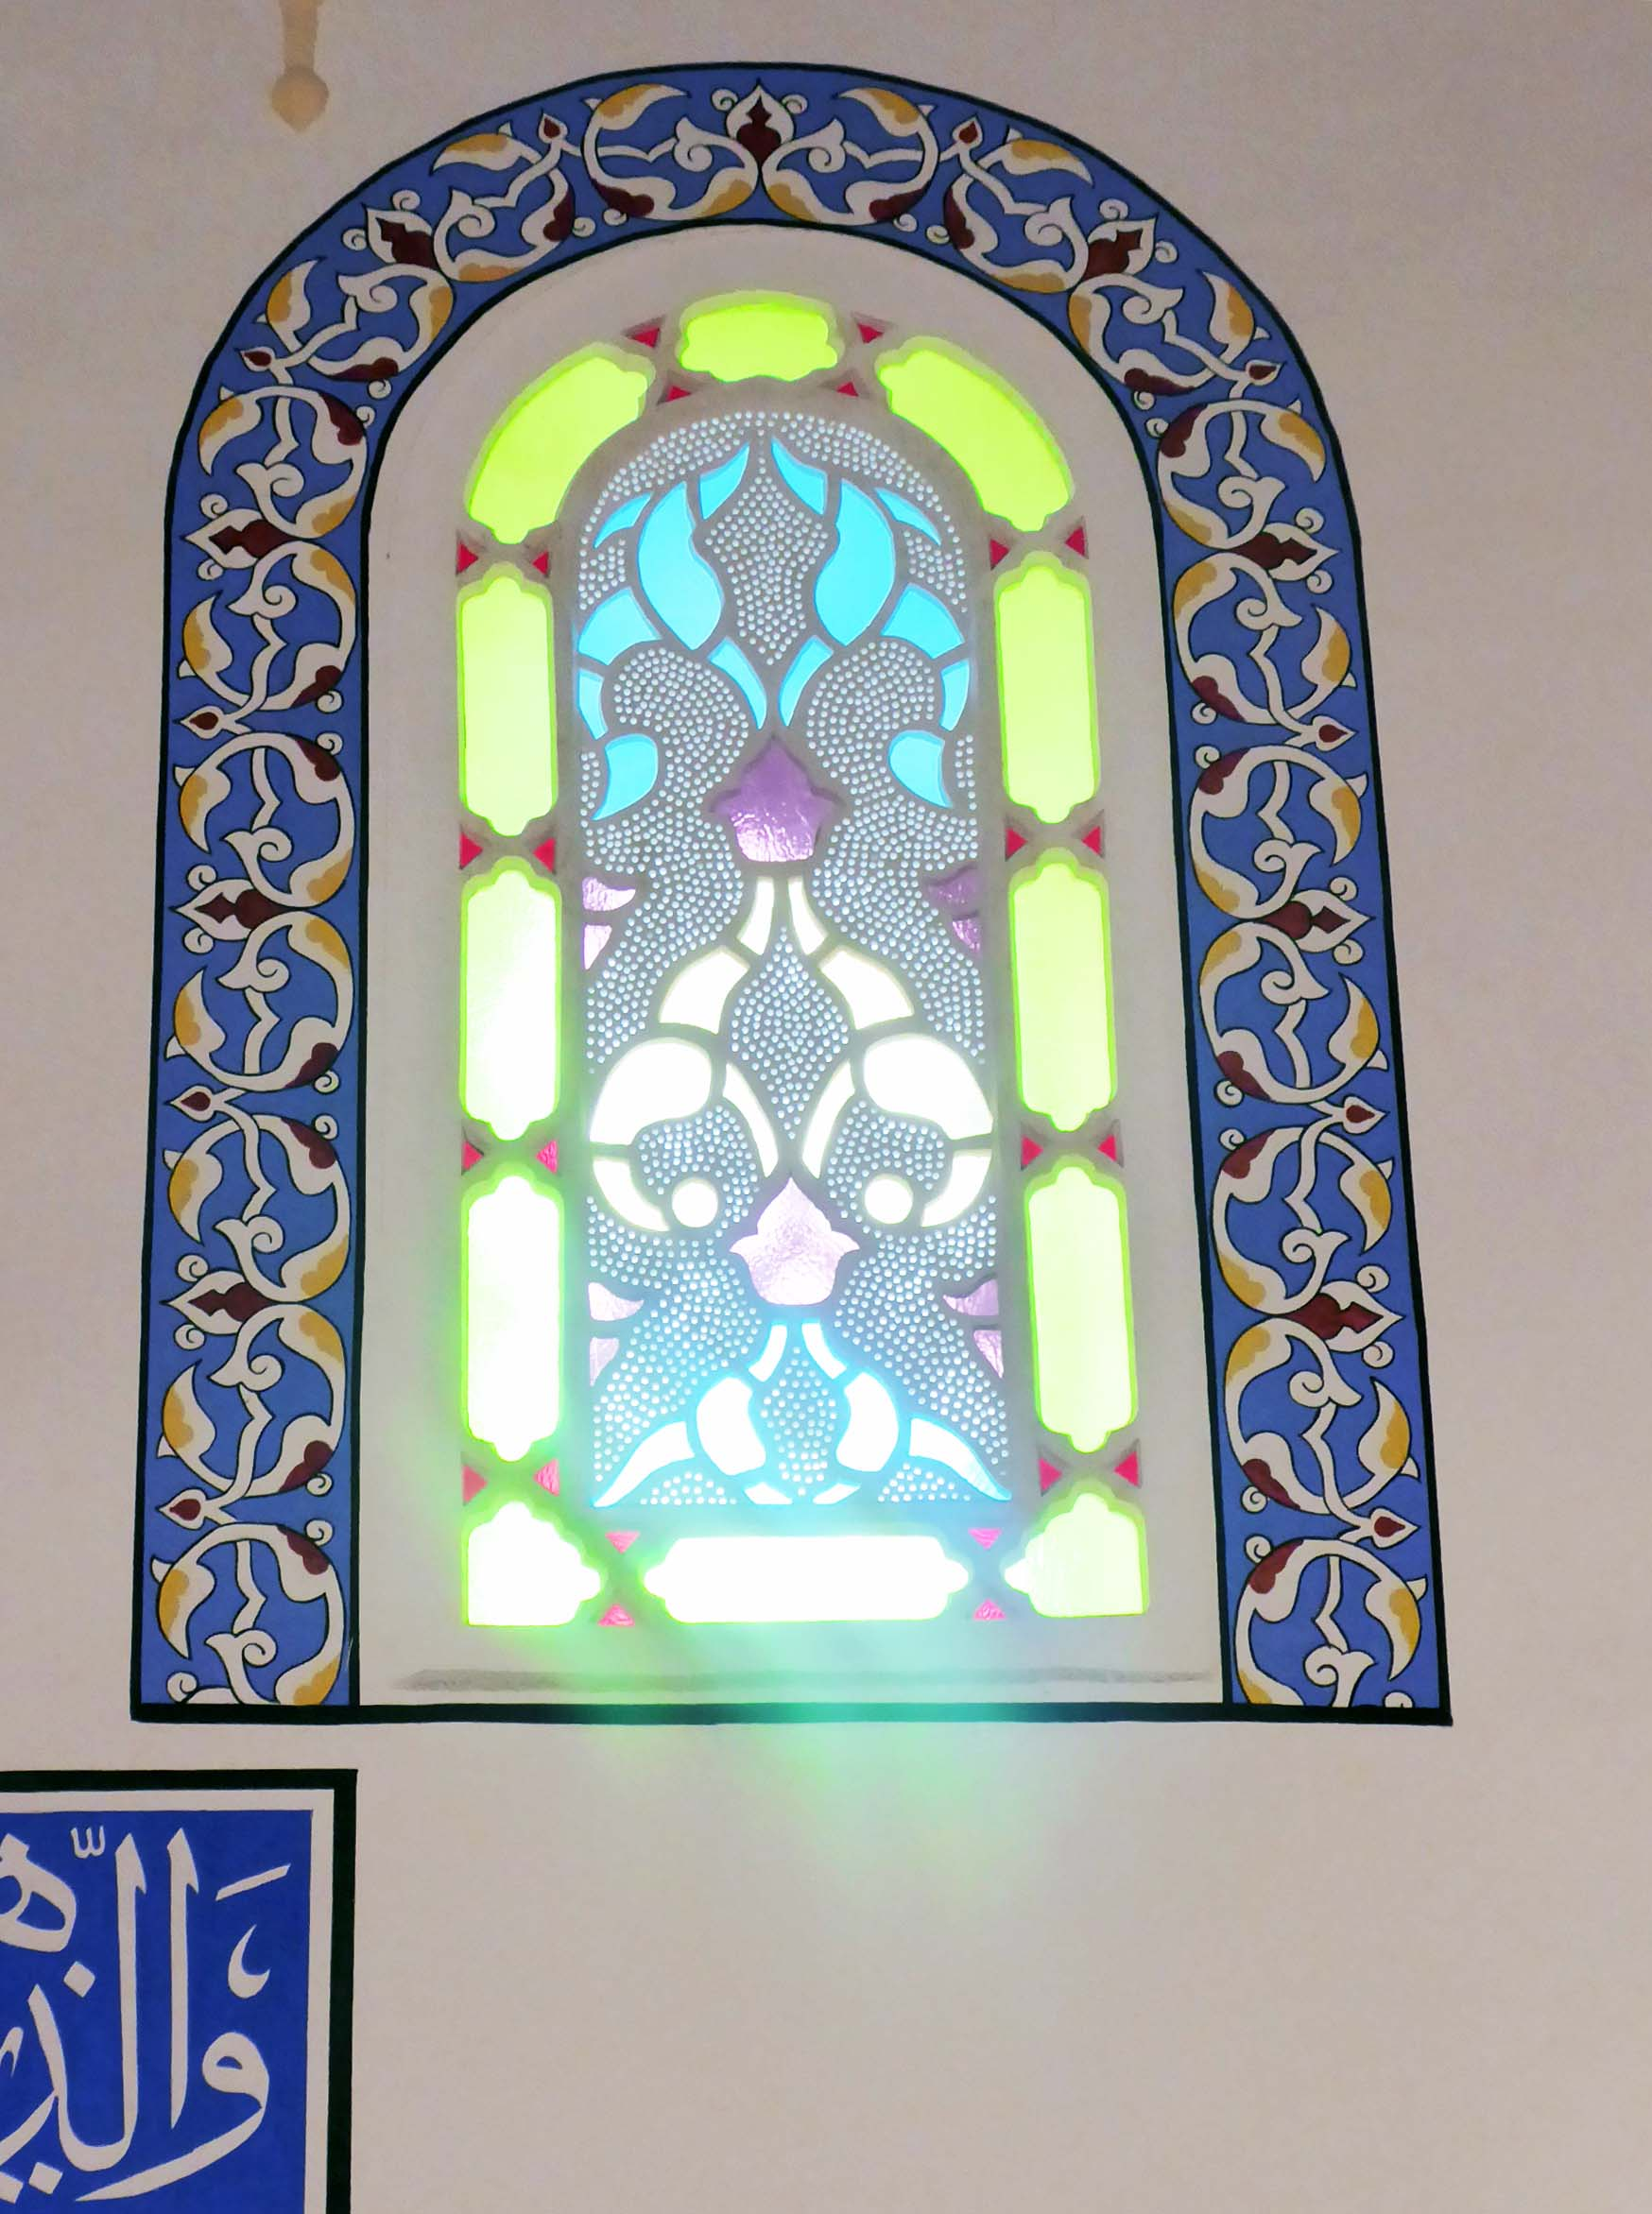 Stained glass window with blue painted frame